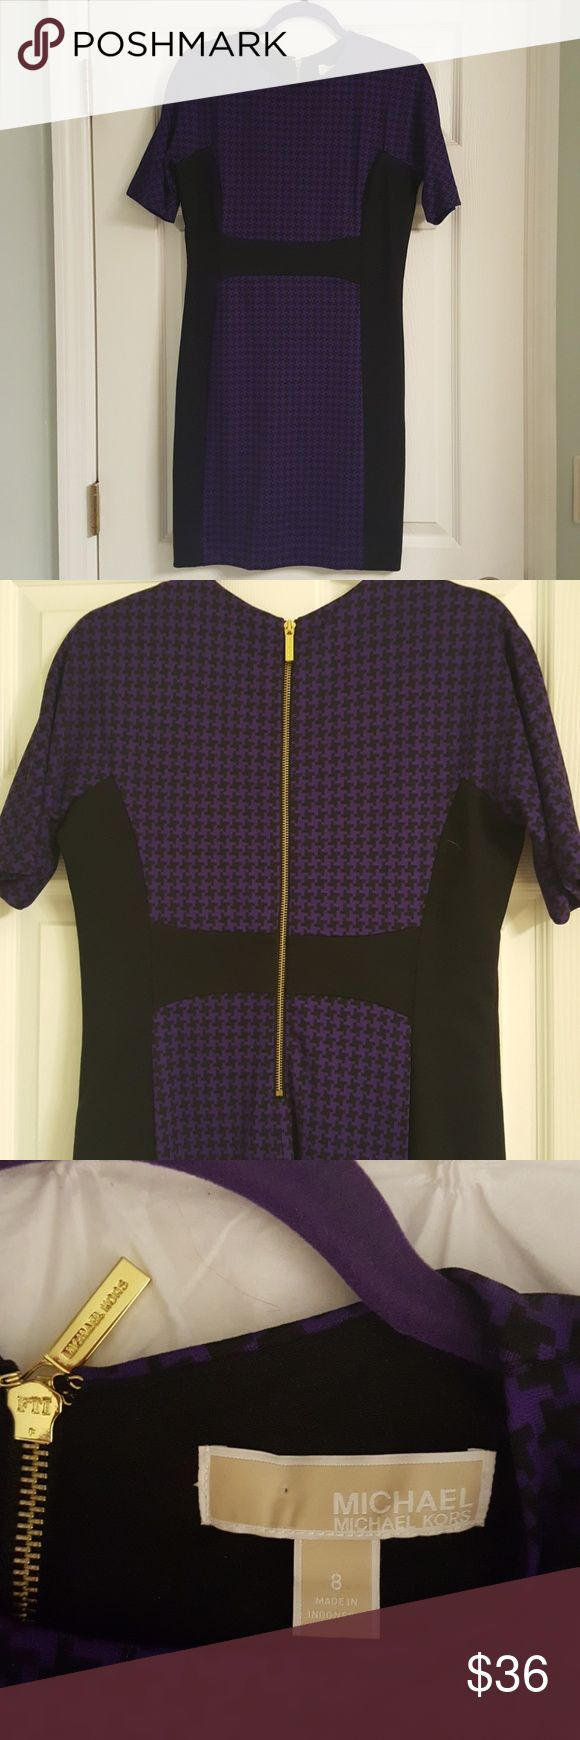 MICHAEL Michaels Kors dress Purple and black houndstooth dress by Michael Kors. Very slimming silhouette!! Fabric is heavy and dress wears well with tights and boots! MICHAEL Michael Kors Dresses Midi